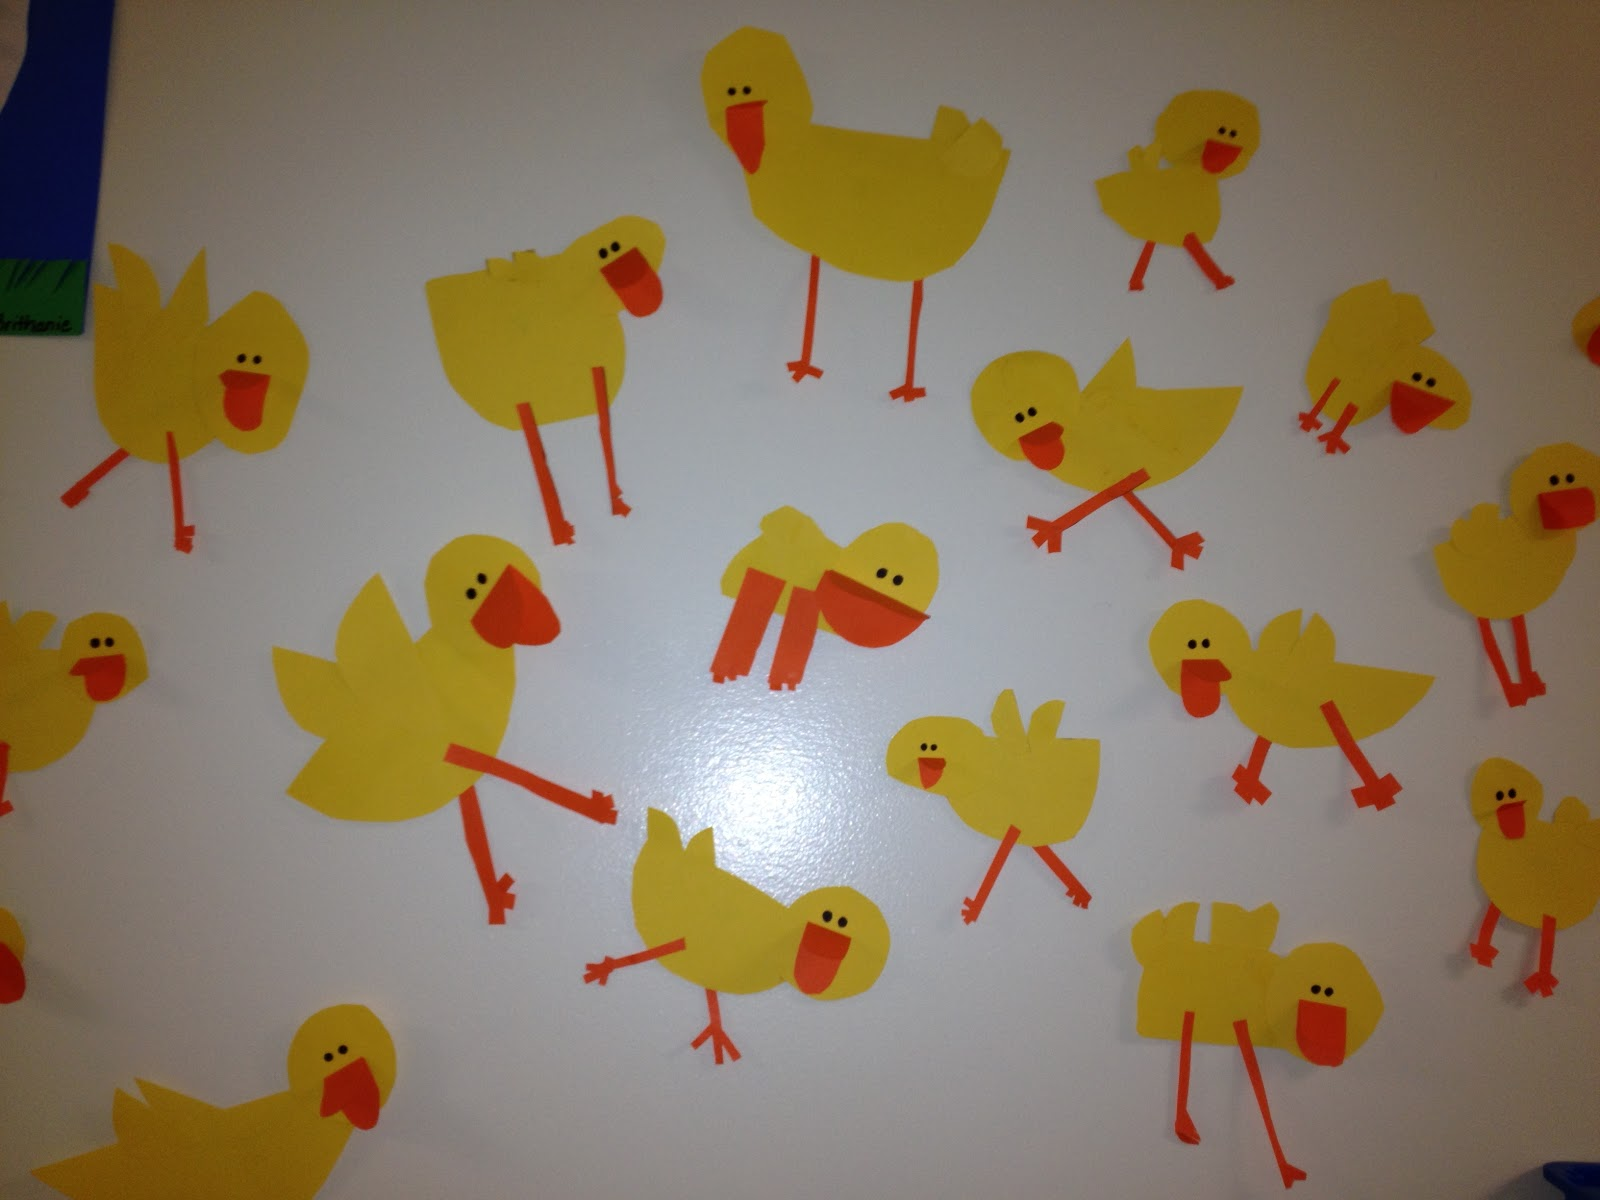 March arts and crafts - Our Grade 2 Teachers Are Just Fabulous When It Comes To Art They Always Have These Cute And Creative Craft Ideas These Days They Are Really Into Chicks